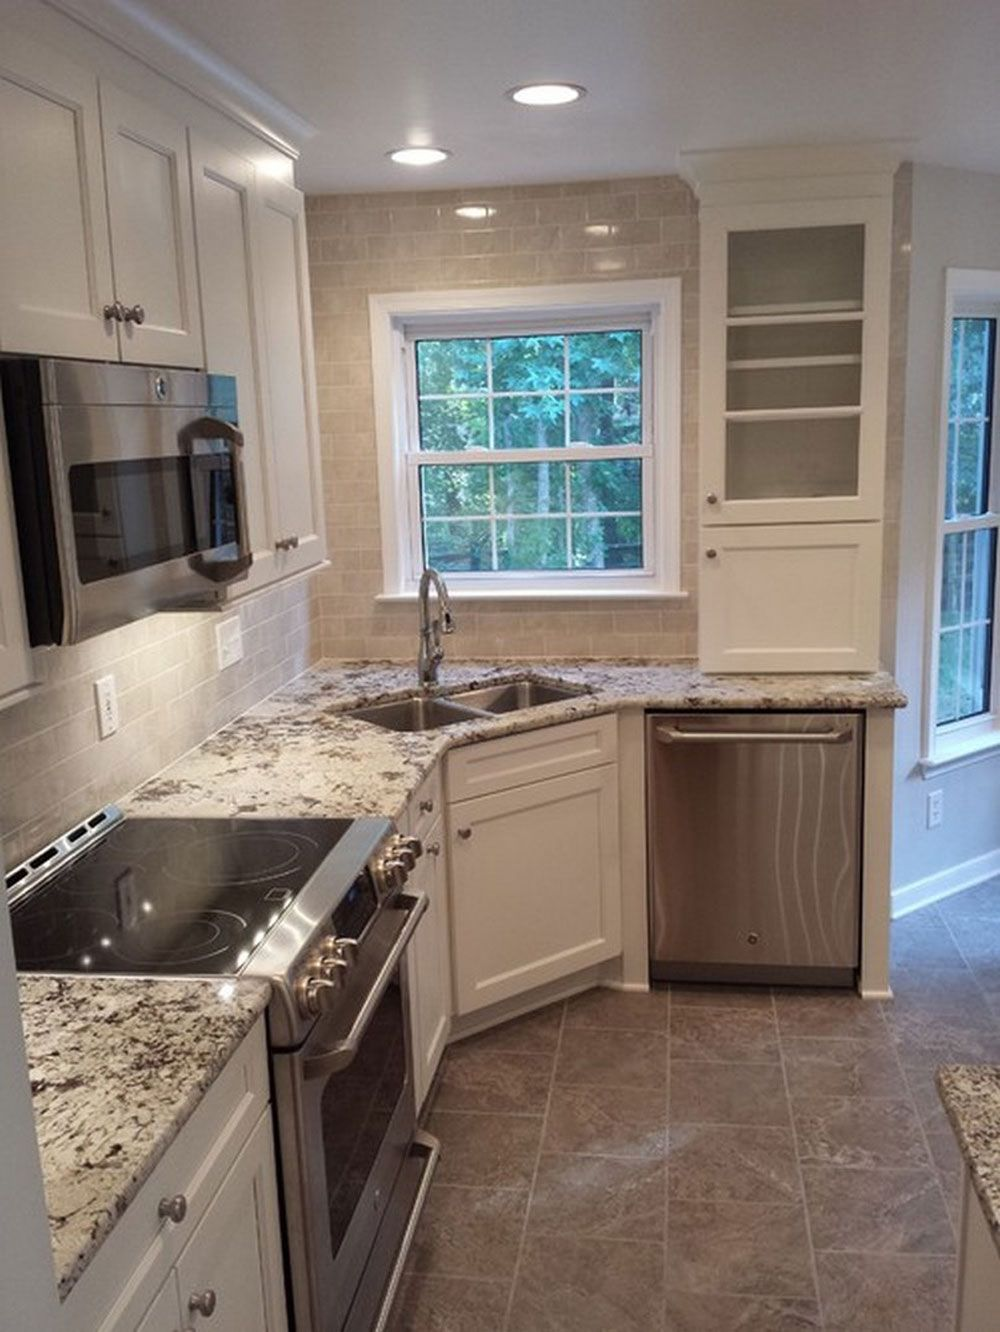 sink kitchen cabinets 40 Little Kitchens That Will Change Everything You Know About Small Spaces Basin sink Stove and Kitchen sinks